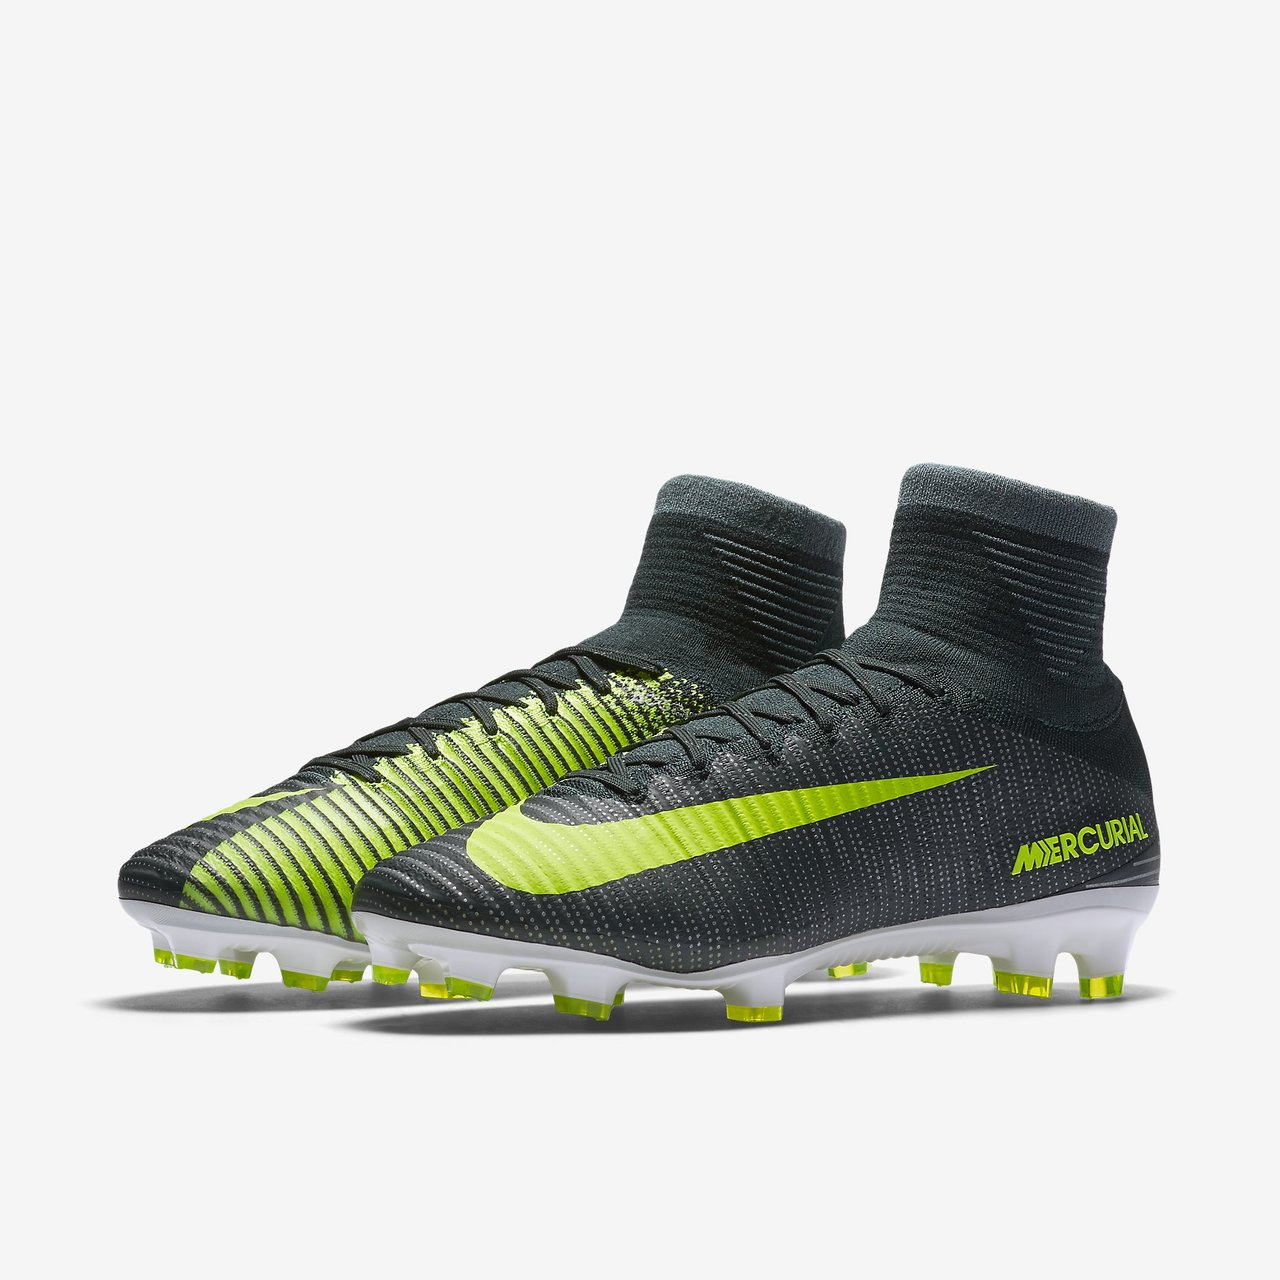 on sale 60cef ec17f Nike Mercurial Superfly V CR7 FG Chapter 3: Discovery ...